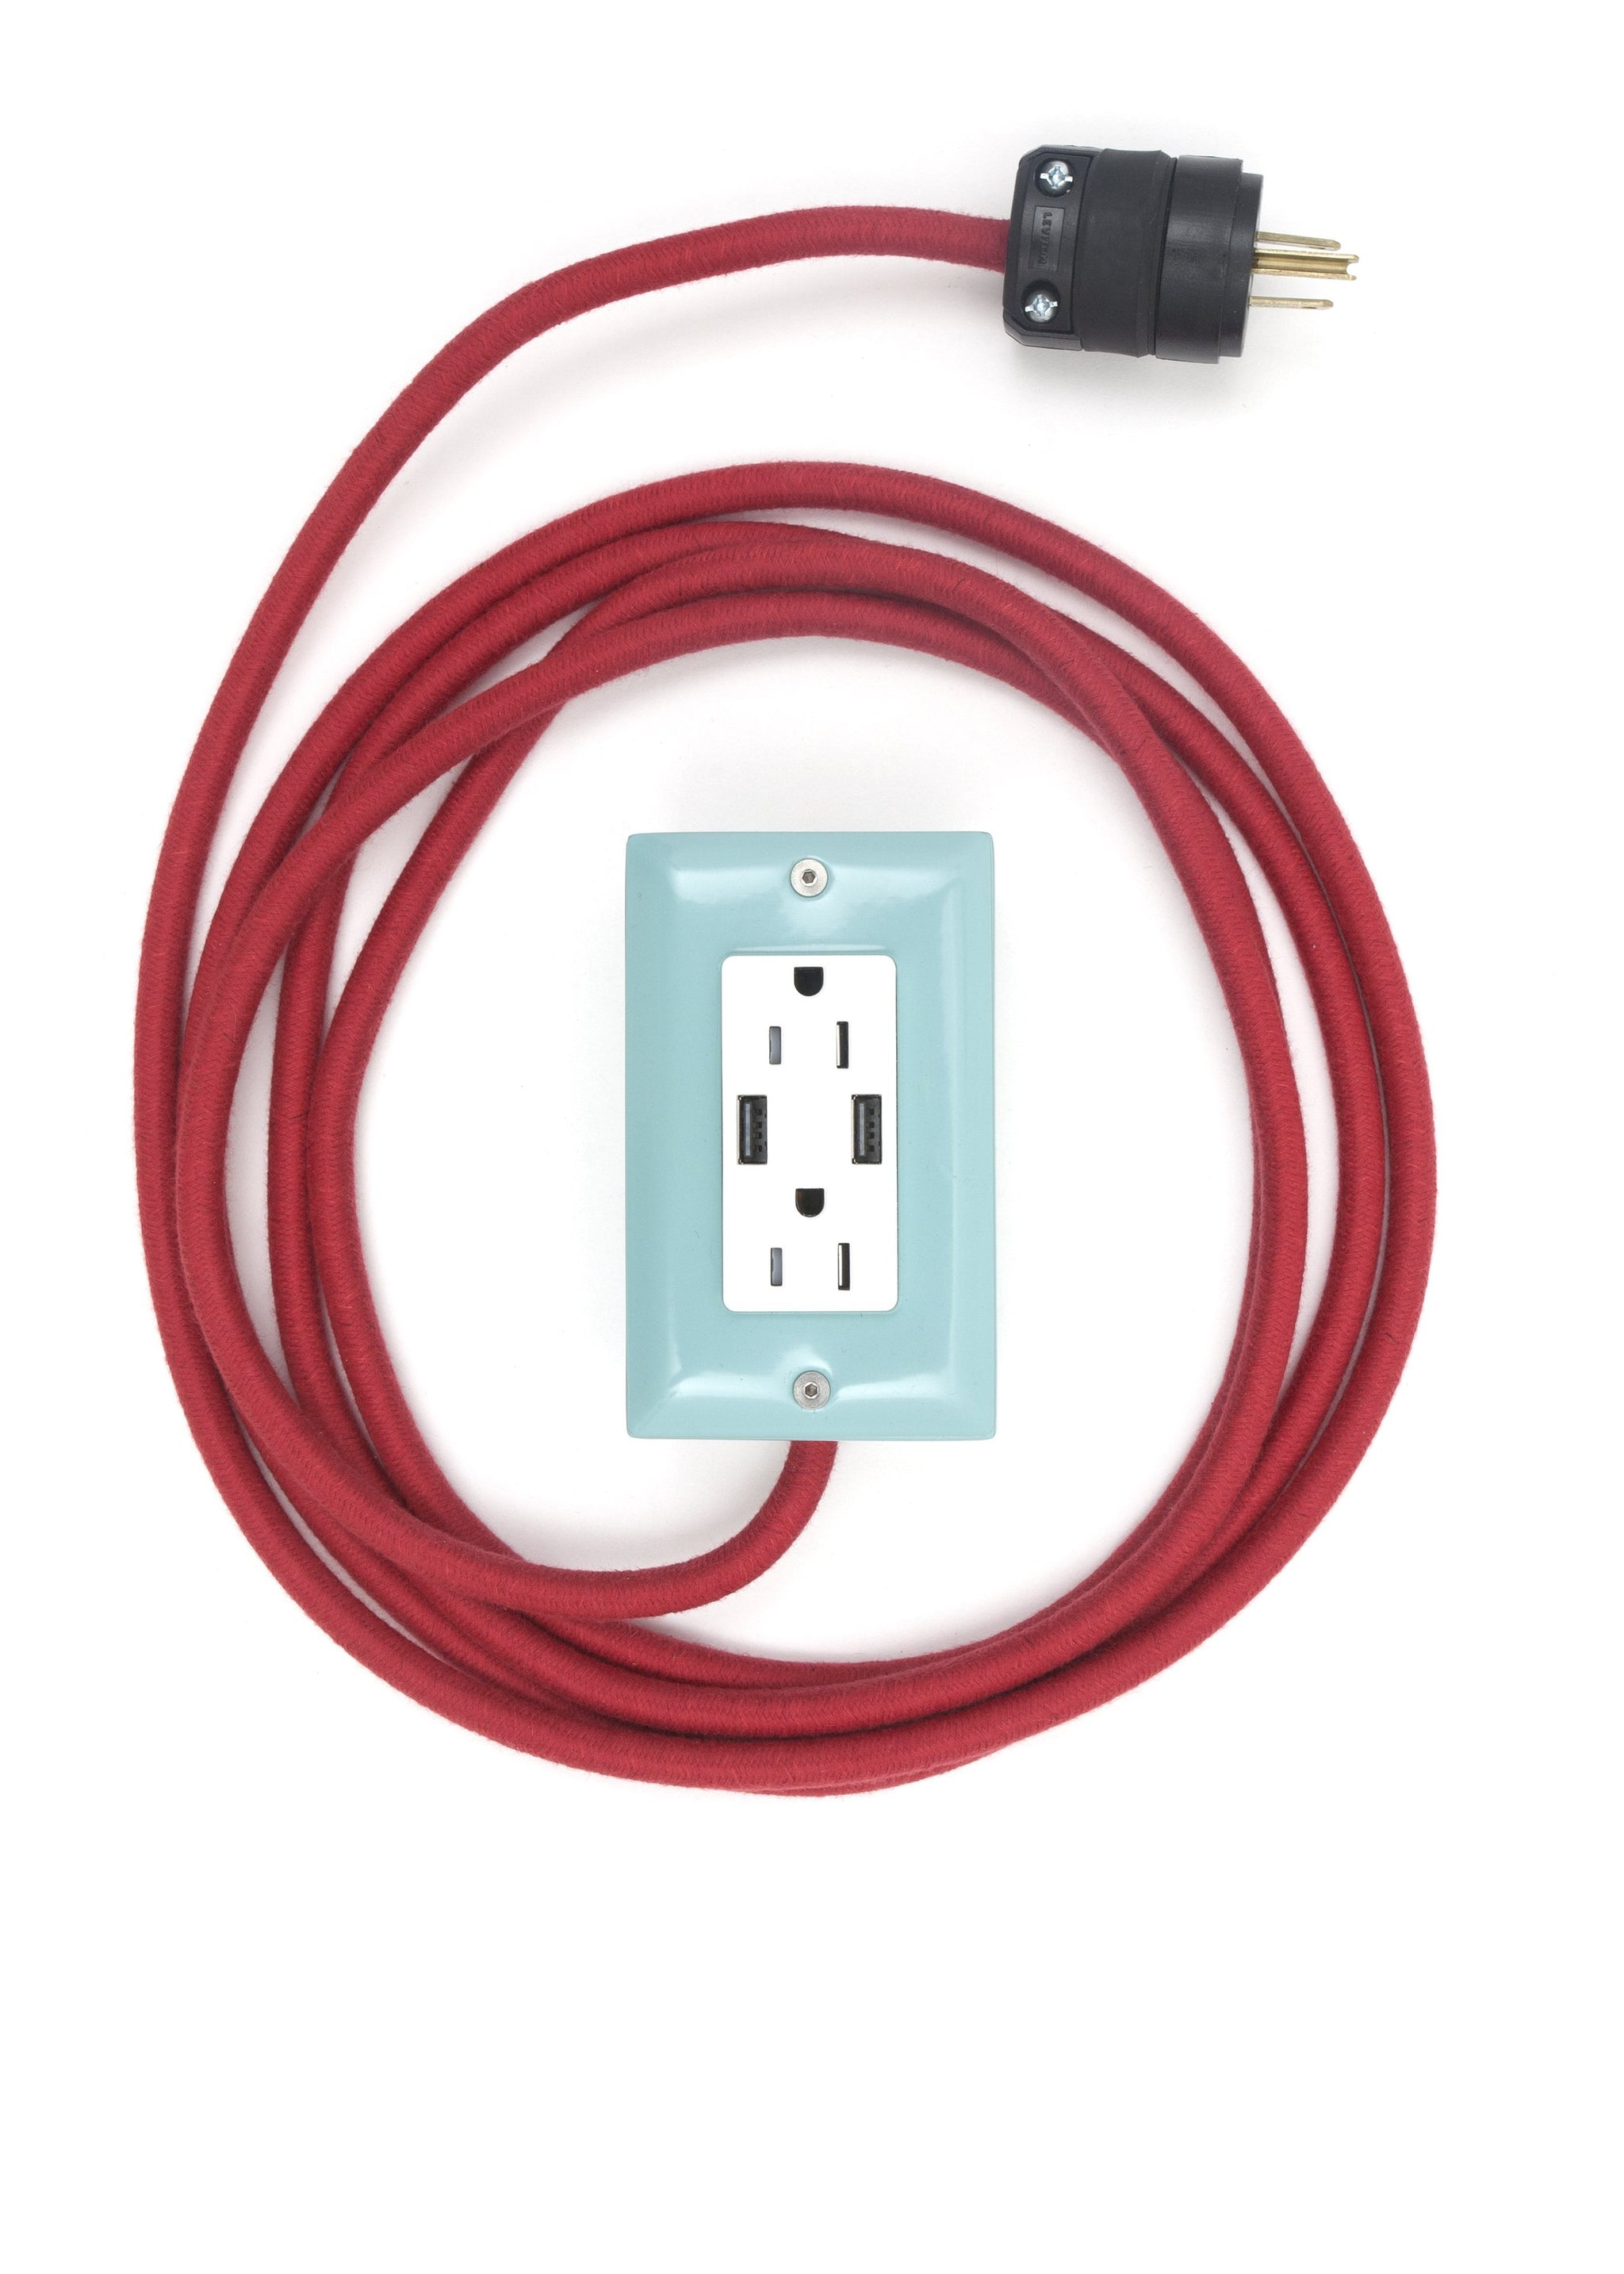 The First Smart Chip Extension Cord - 12' Extō Dual-USB, Dual-Outlet - Mint